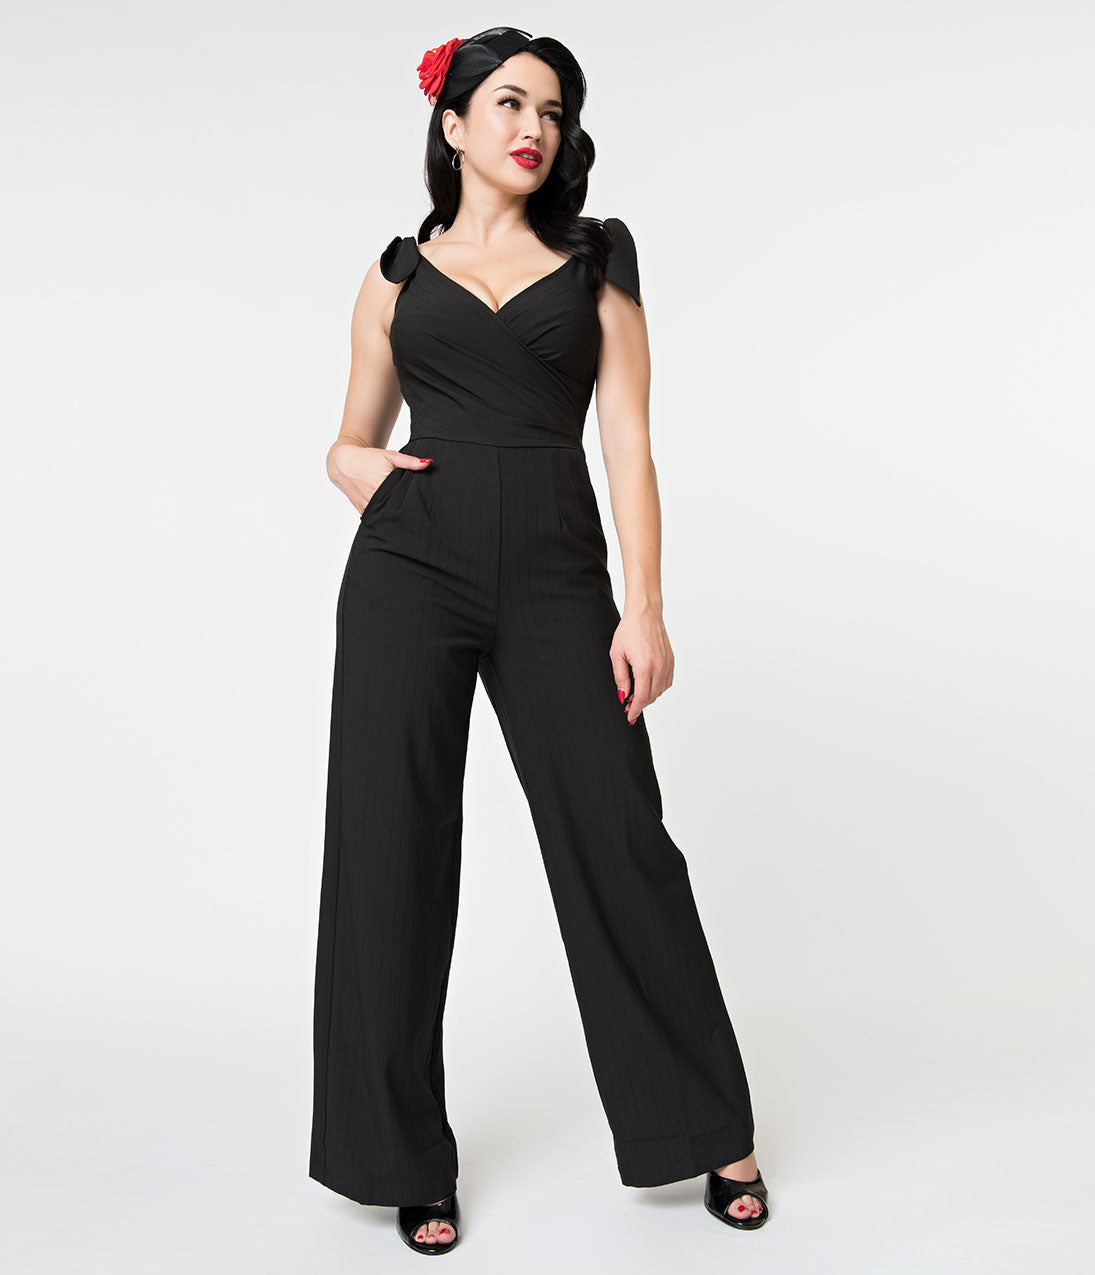 1950s Pants & Jeans- High Waist, Wide Leg, Capri, Pedal Pushers Voodoo Vixen Black Pinstripe Wide Leg Lyla Jumpsuit $96.00 AT vintagedancer.com